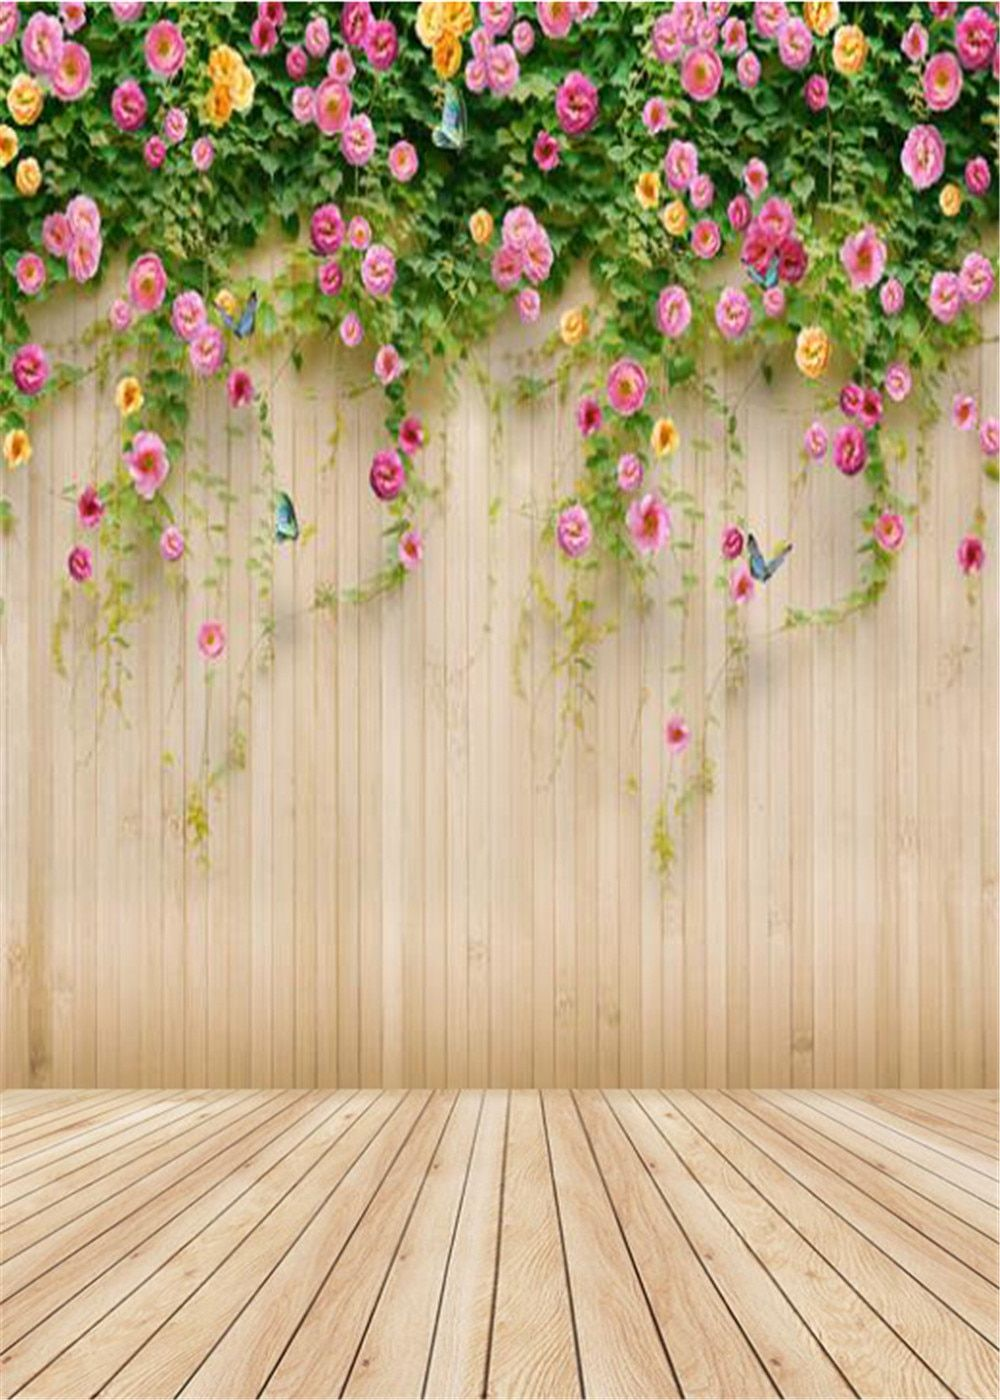 5x7ft Wooden Floor Working Room Flowers Photography Background Computer-Printed Vinyl Backdrops